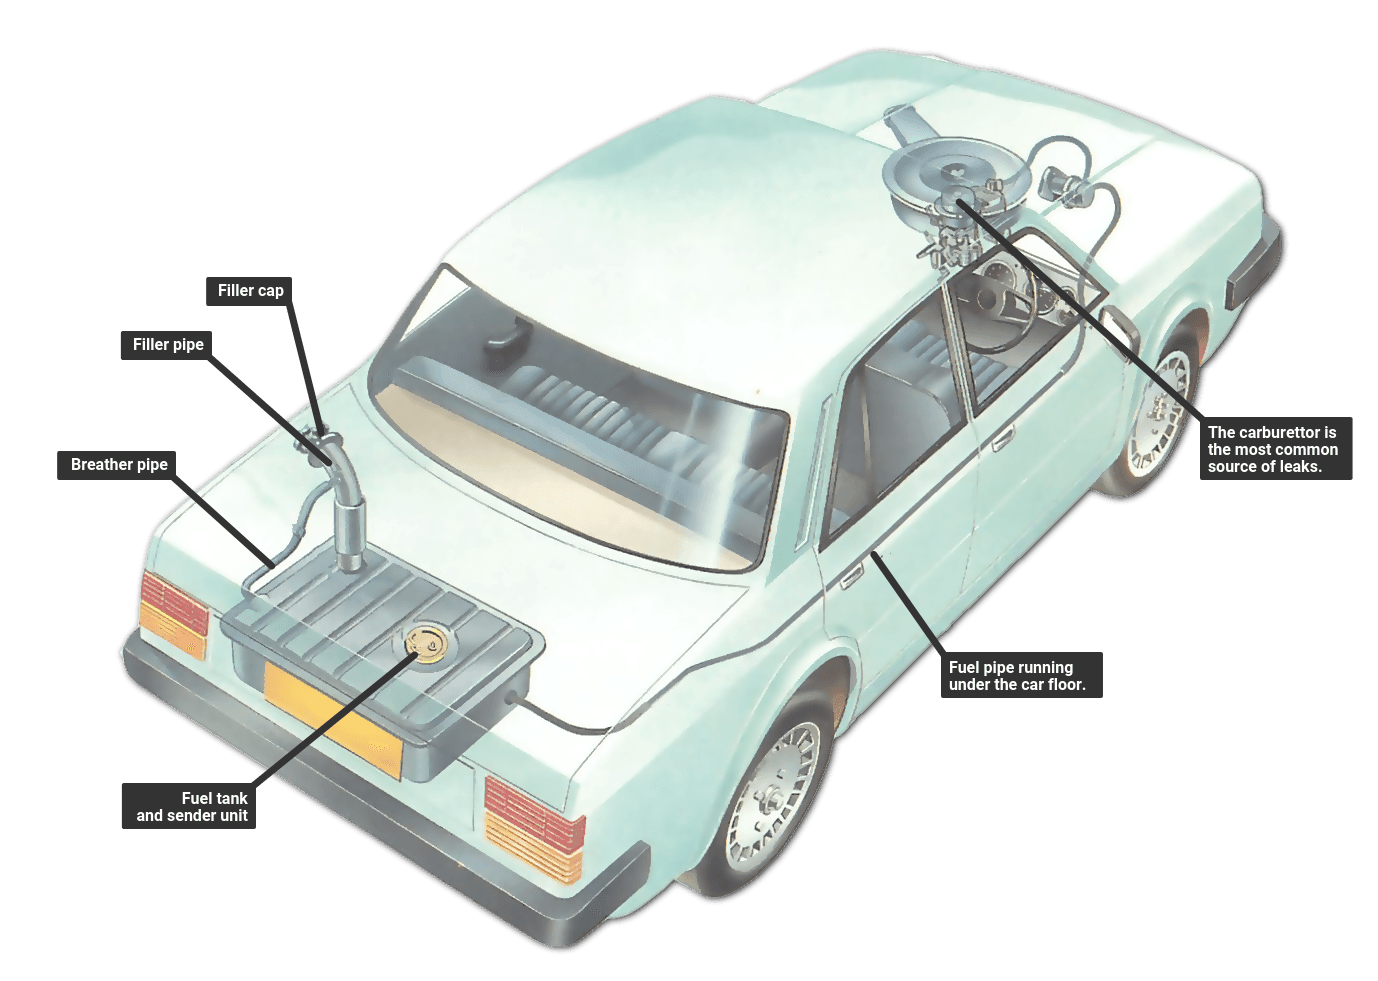 Servicing The Fuel Supply System How A Car Works